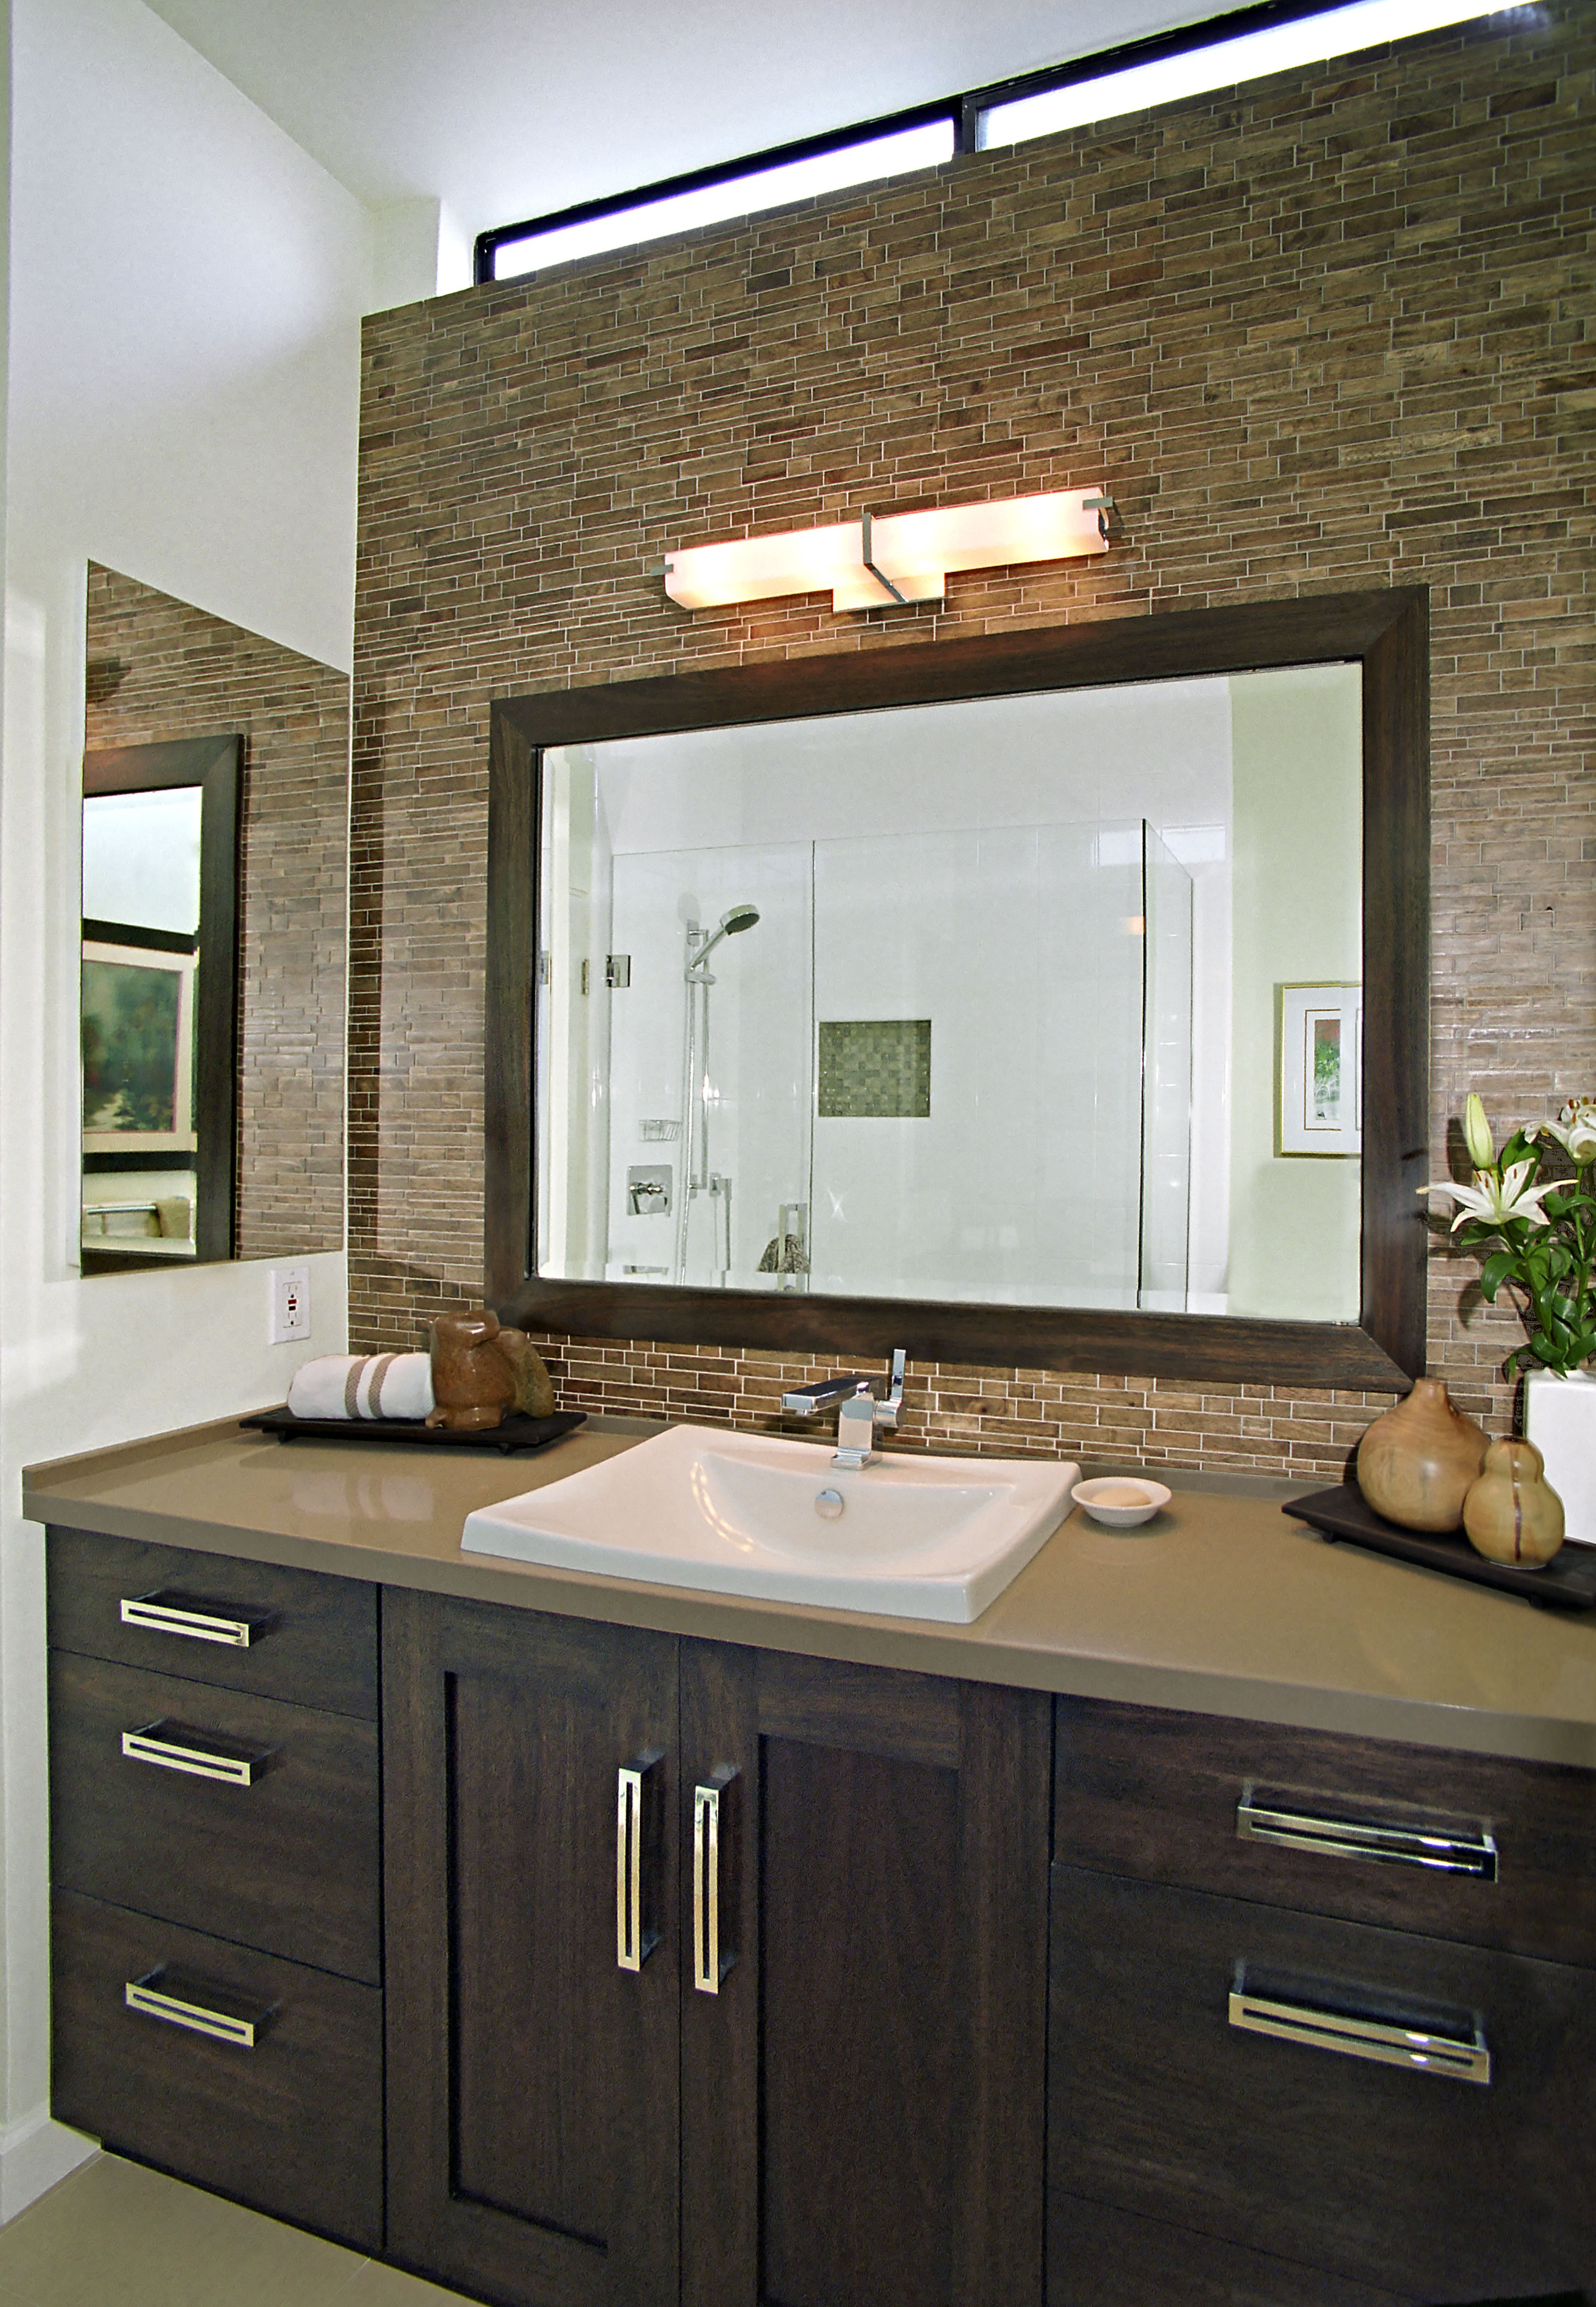 Above counter sink large framed mirror glass tile backsplash above counter sink large framed mirror glass tile backsplash neutral color pallet dailygadgetfo Choice Image